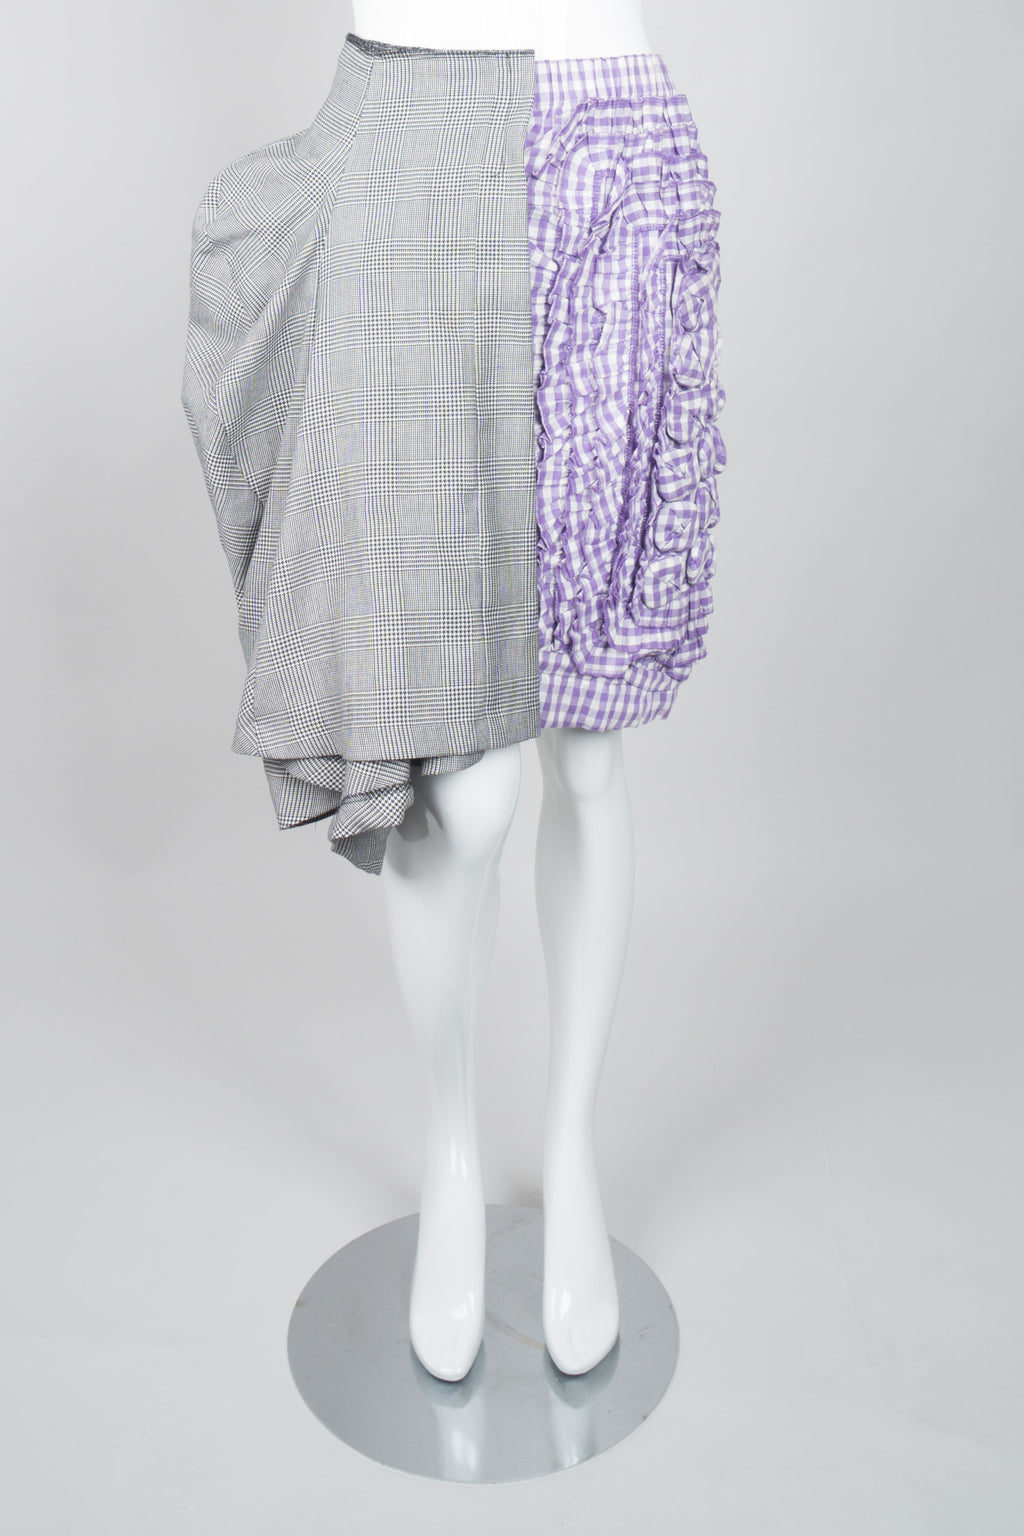 Comme des Garçons Mixed Media Draped Panel Gingham Skirt